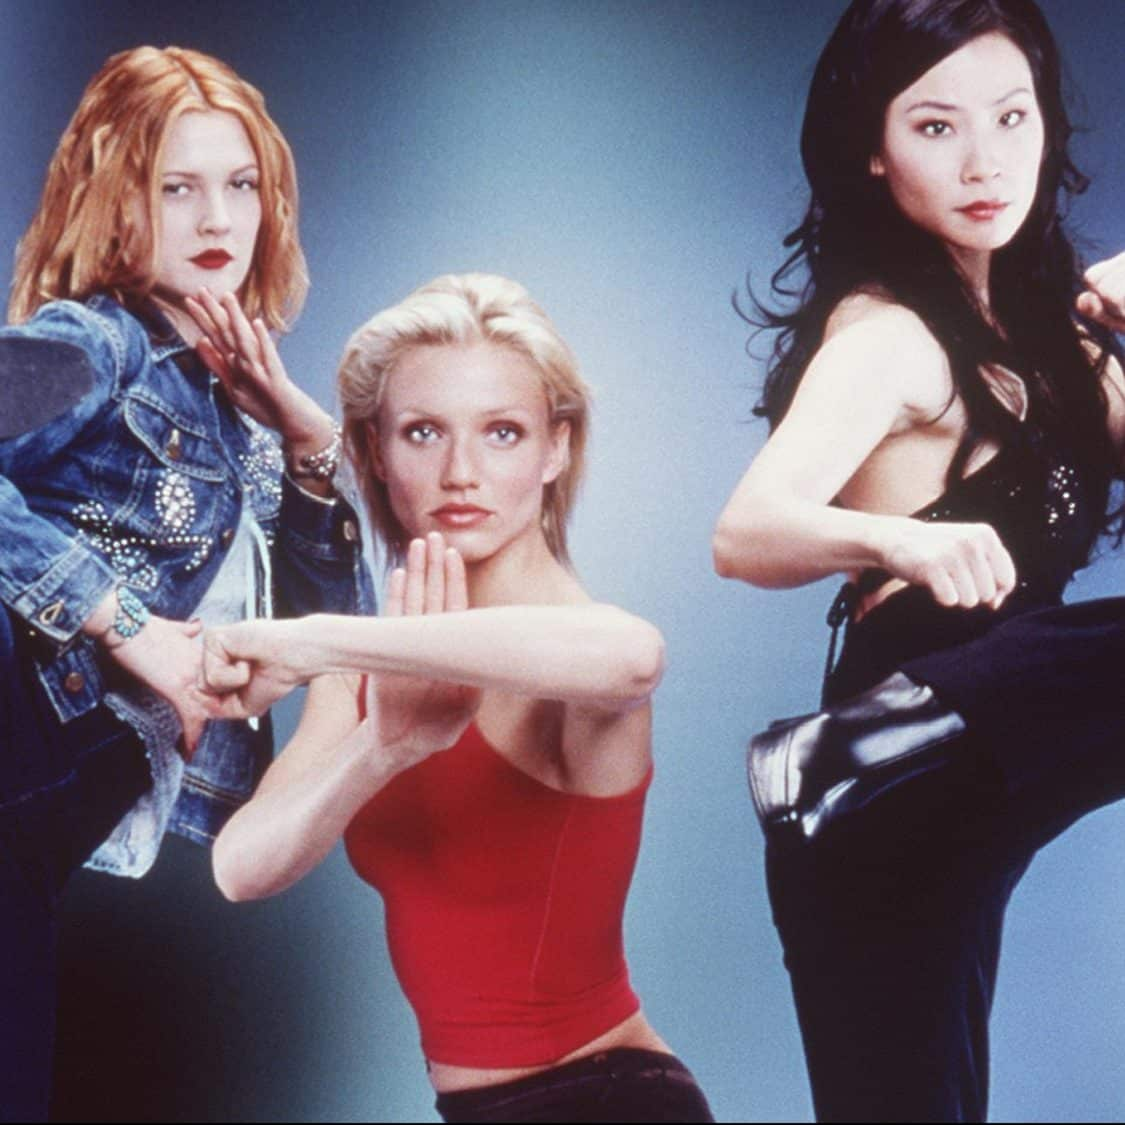 1565887336619 GettyImages 1304410 e1571149344802 20 Kick-Ass Facts About Charlie's Angels (2000)